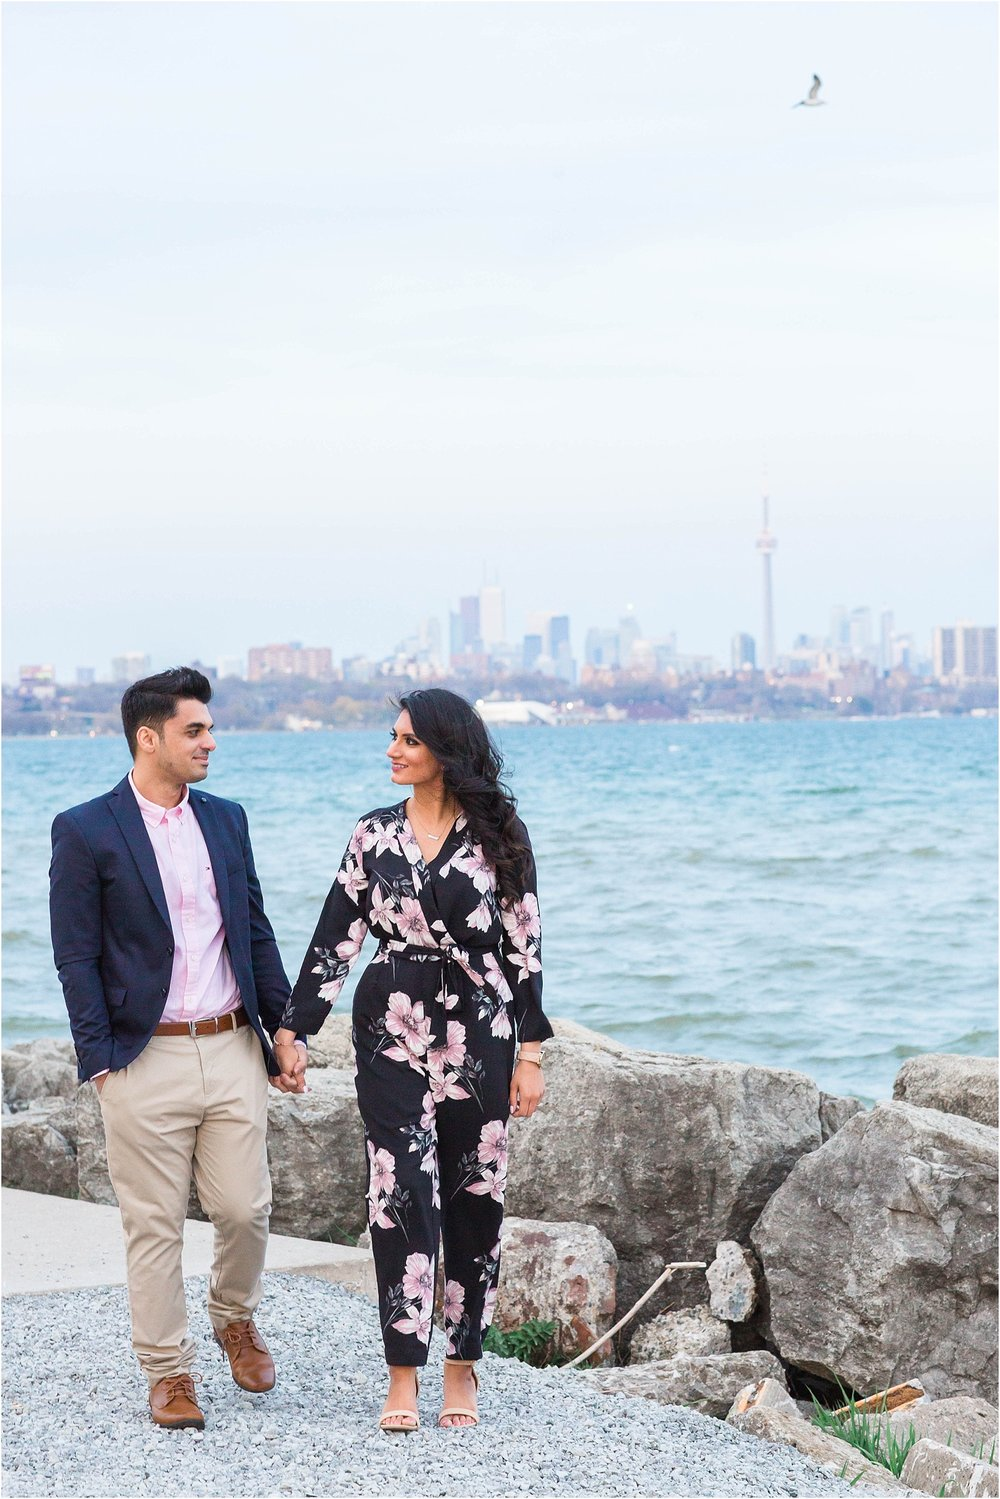 Ryerson-University-Humber-Bay-Bridge-Engagement-Session-Toronto-Mississauga-Brampton-Scarborough-GTA-Pakistani-Indian-Wedding-Engagement-Photographer-Photography_0034.jpg